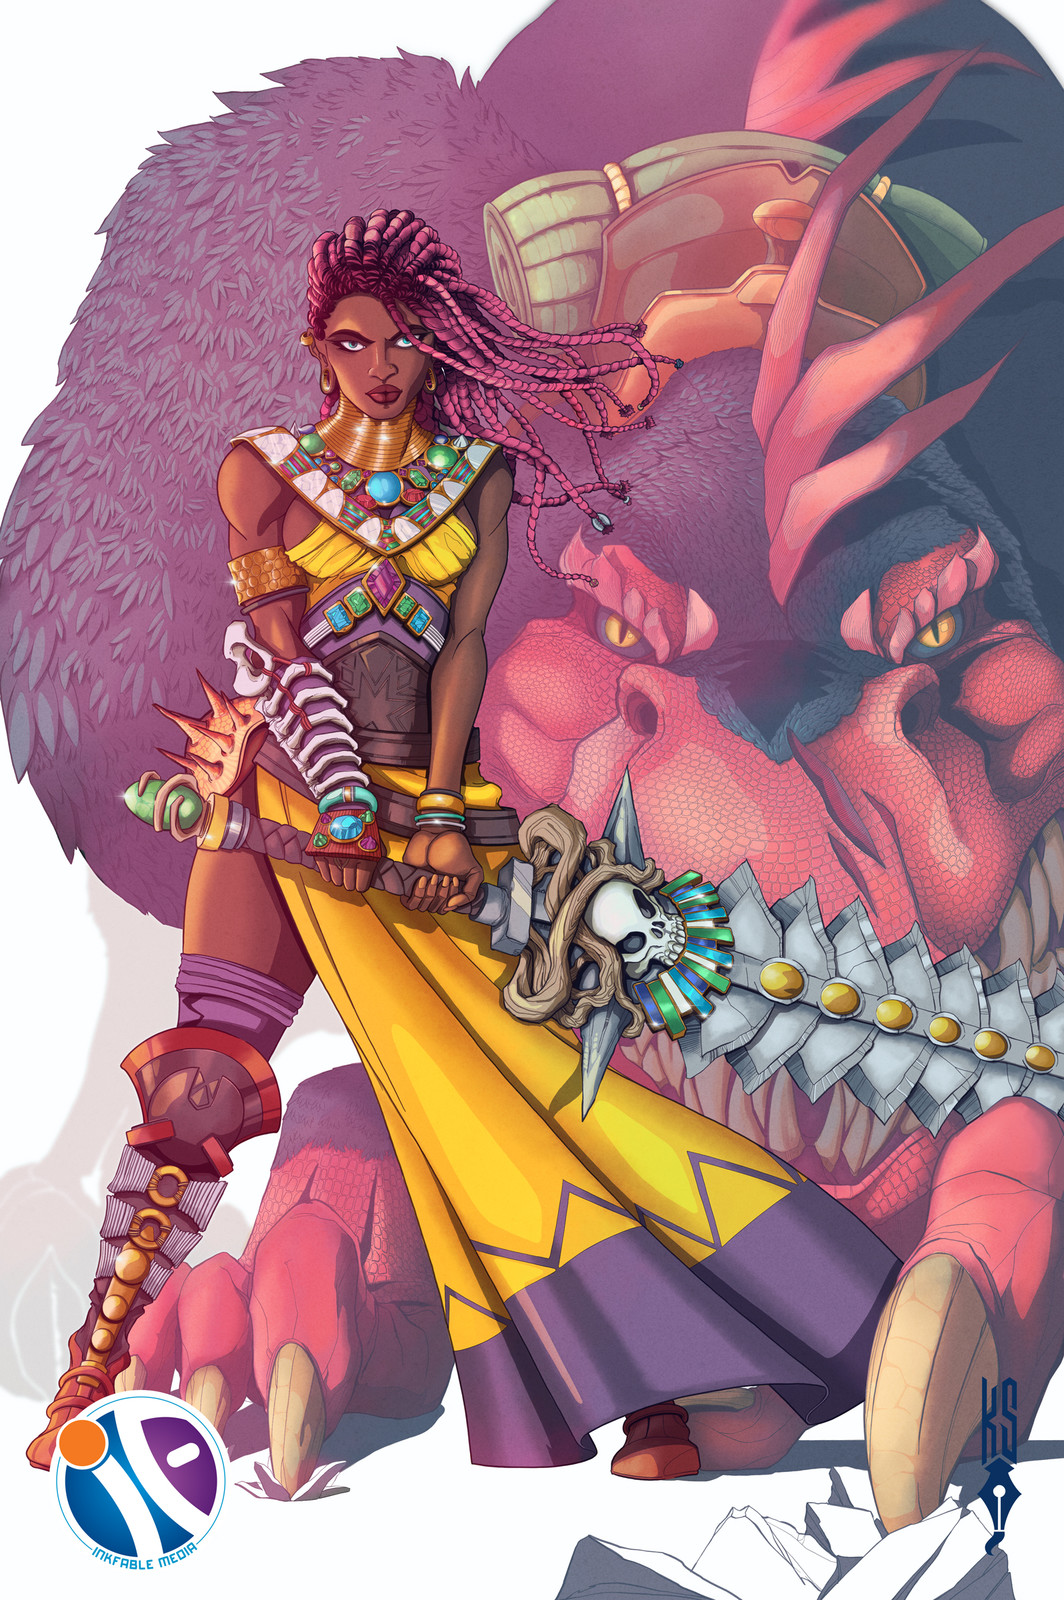 Illustration Original Character for a submission.